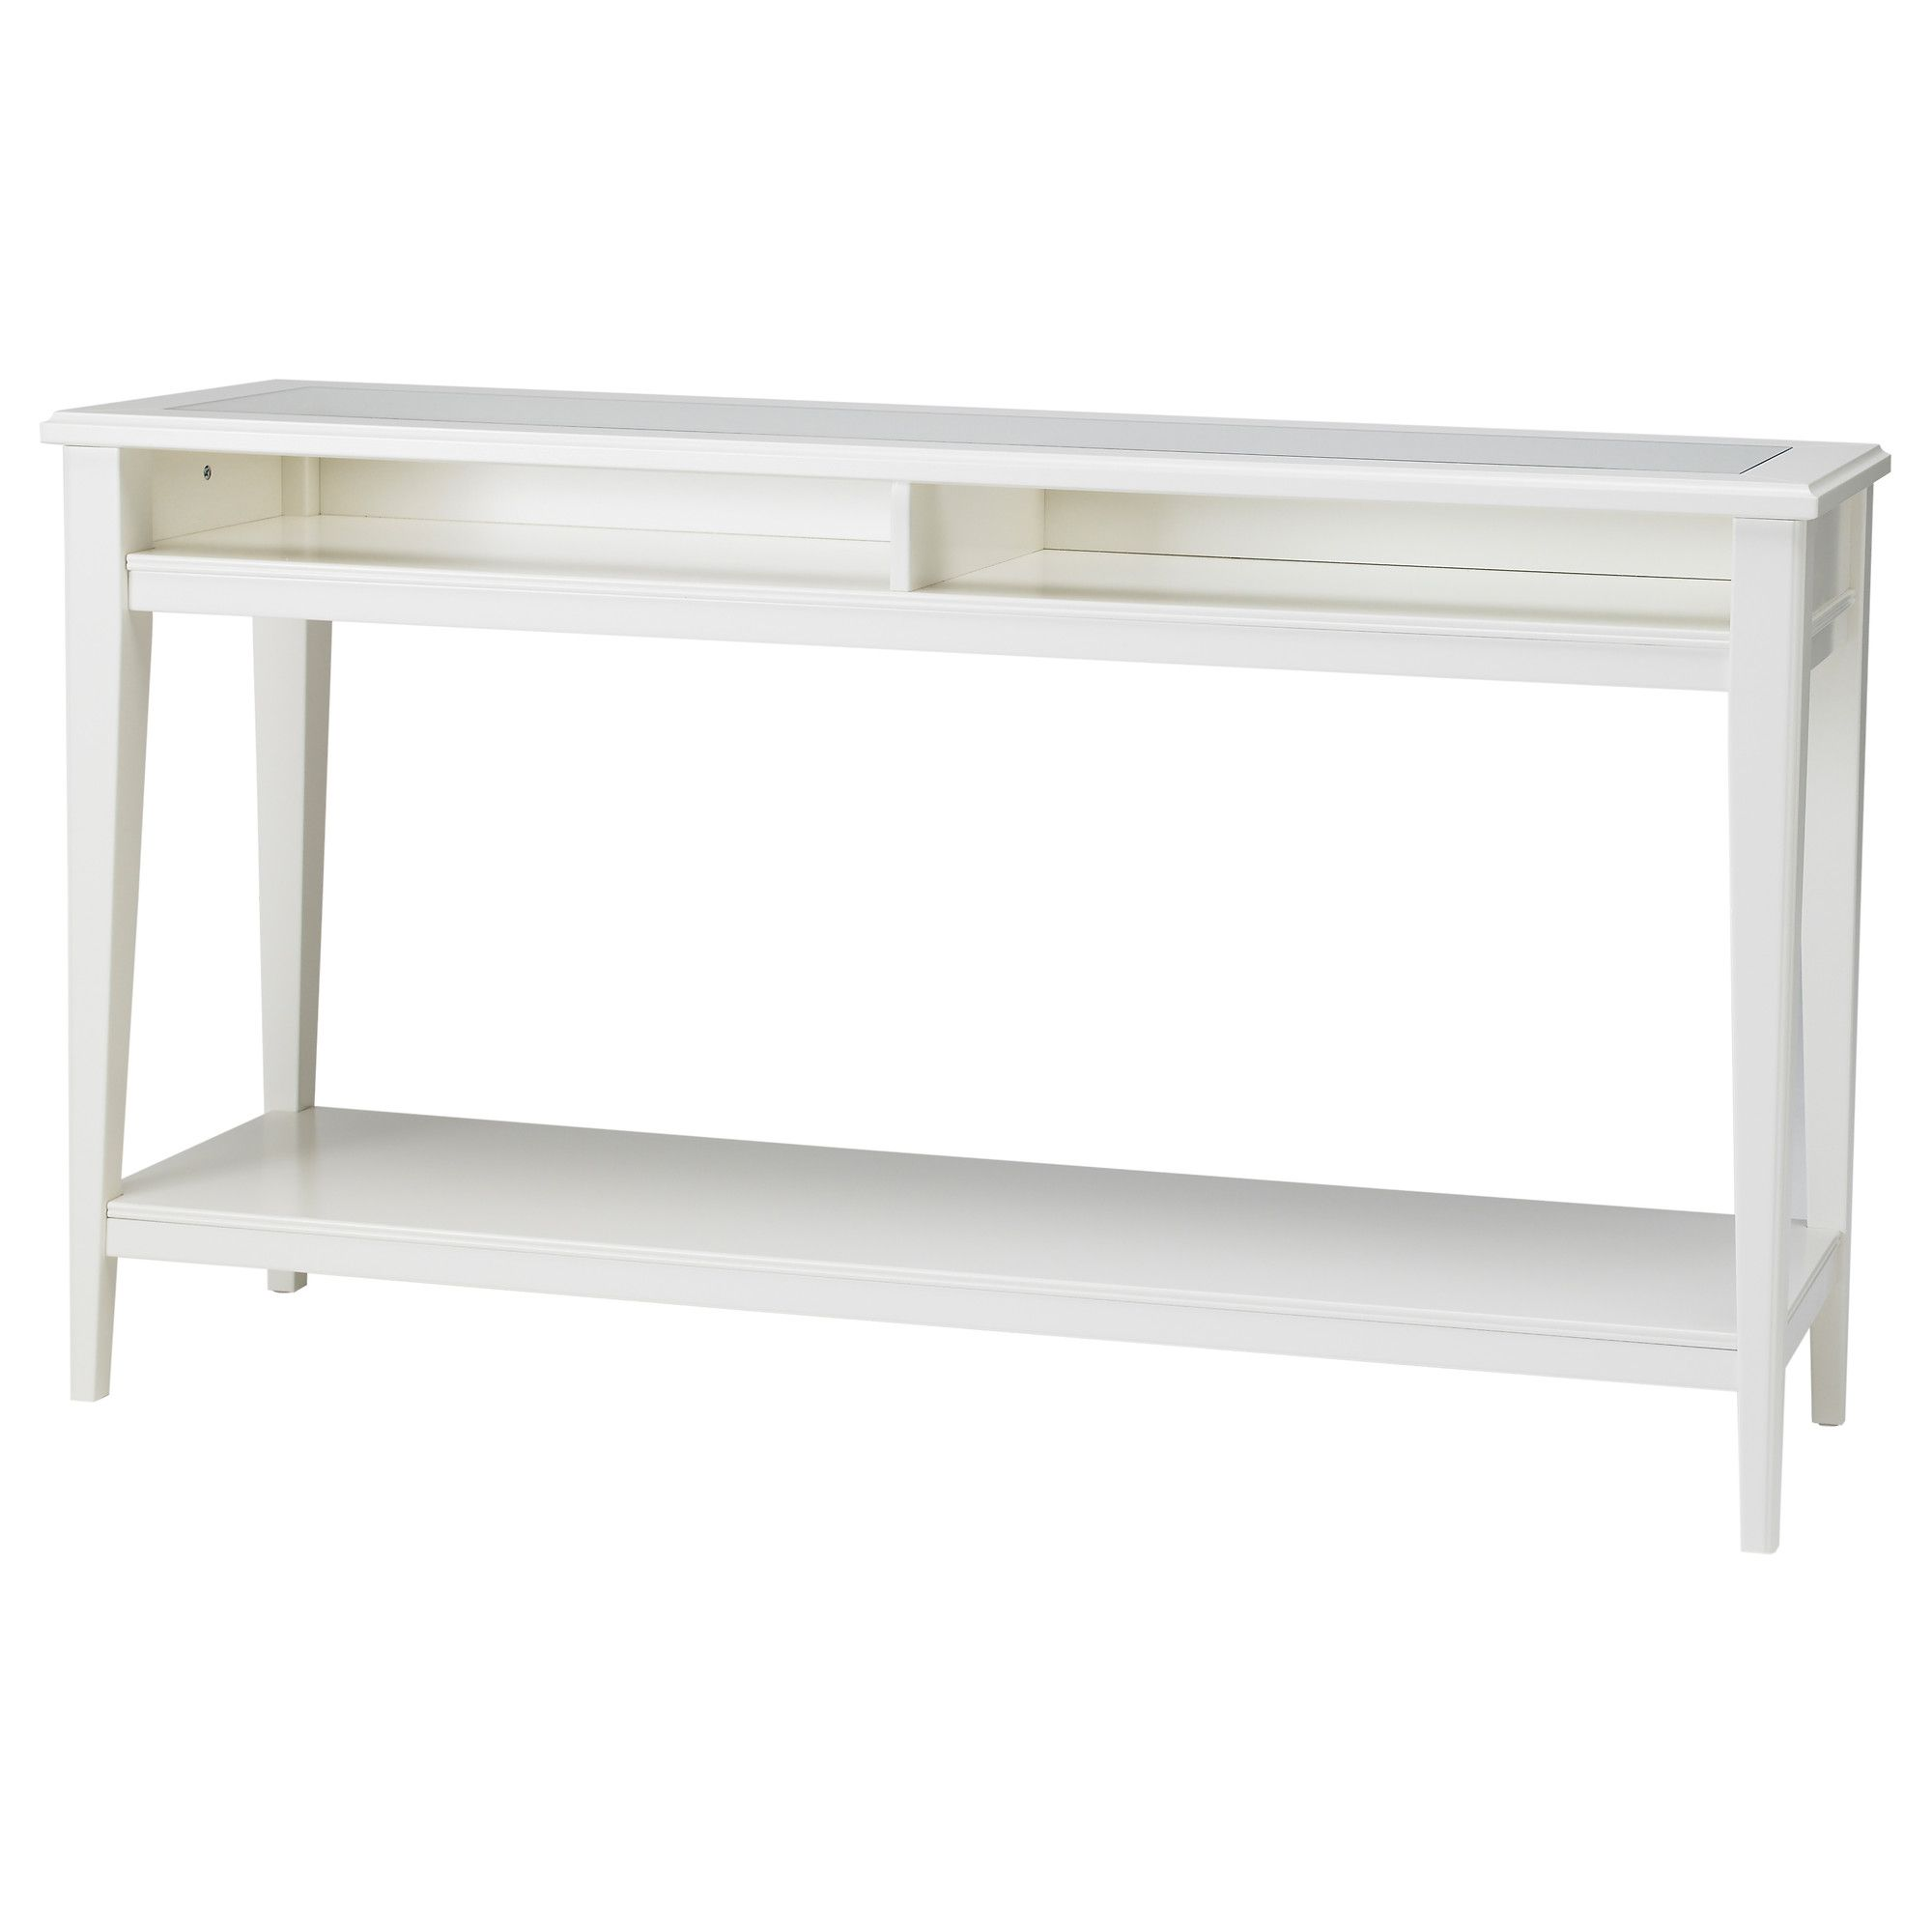 Liatorp Console Table White Glass 52 3 8x14 5 8 Sofa Table